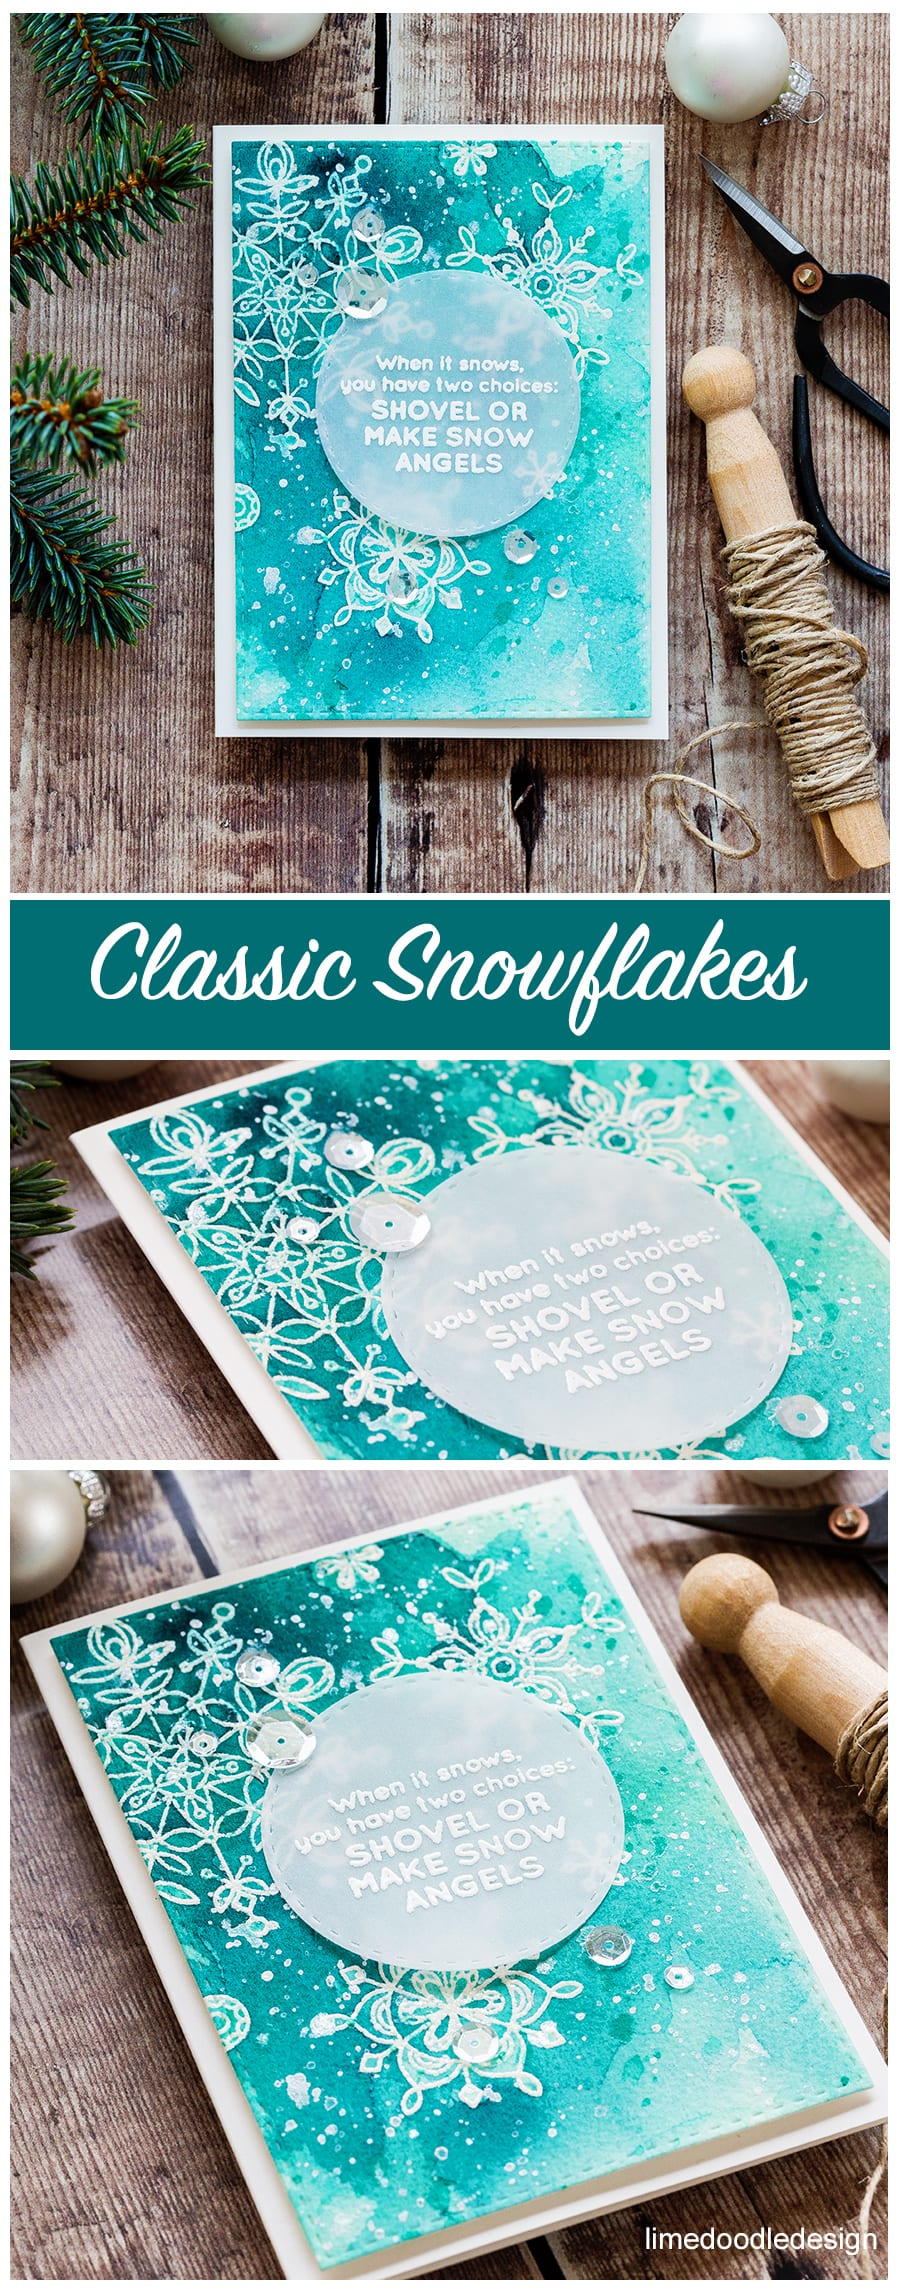 Classic snowflakes card by Debby Hughes - heat embossed snowflakes with Gansai Tambi watercolor. Find out more about this card by clicking on the following link: https://limedoodledesign.com/2016/12/classic-snowflakes-january-card-kit/